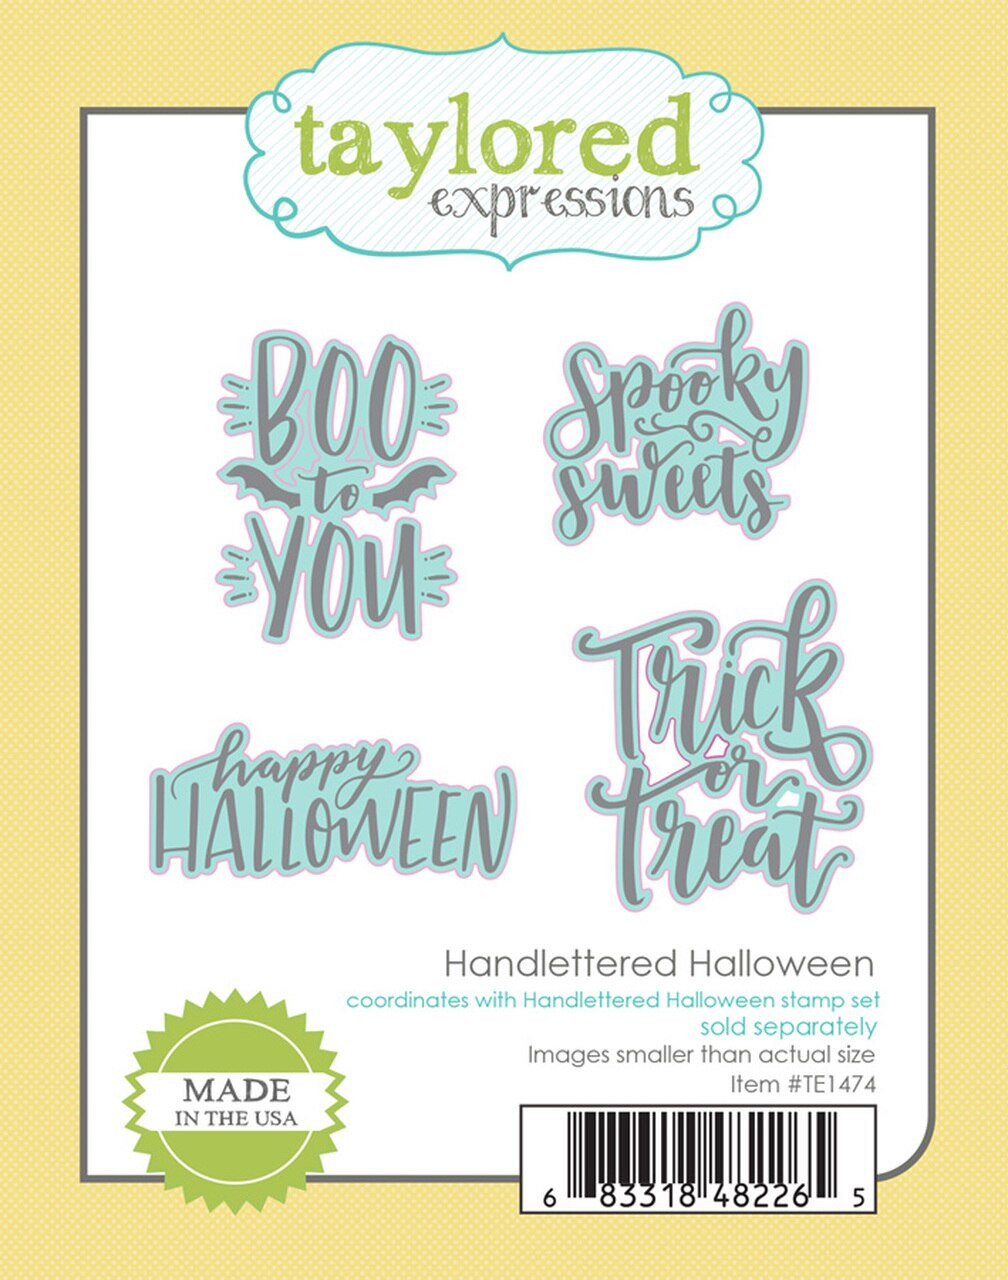 **PRE-ORDER* - Taylored Expression - HANDLETTERED HALLOWEEN DIES